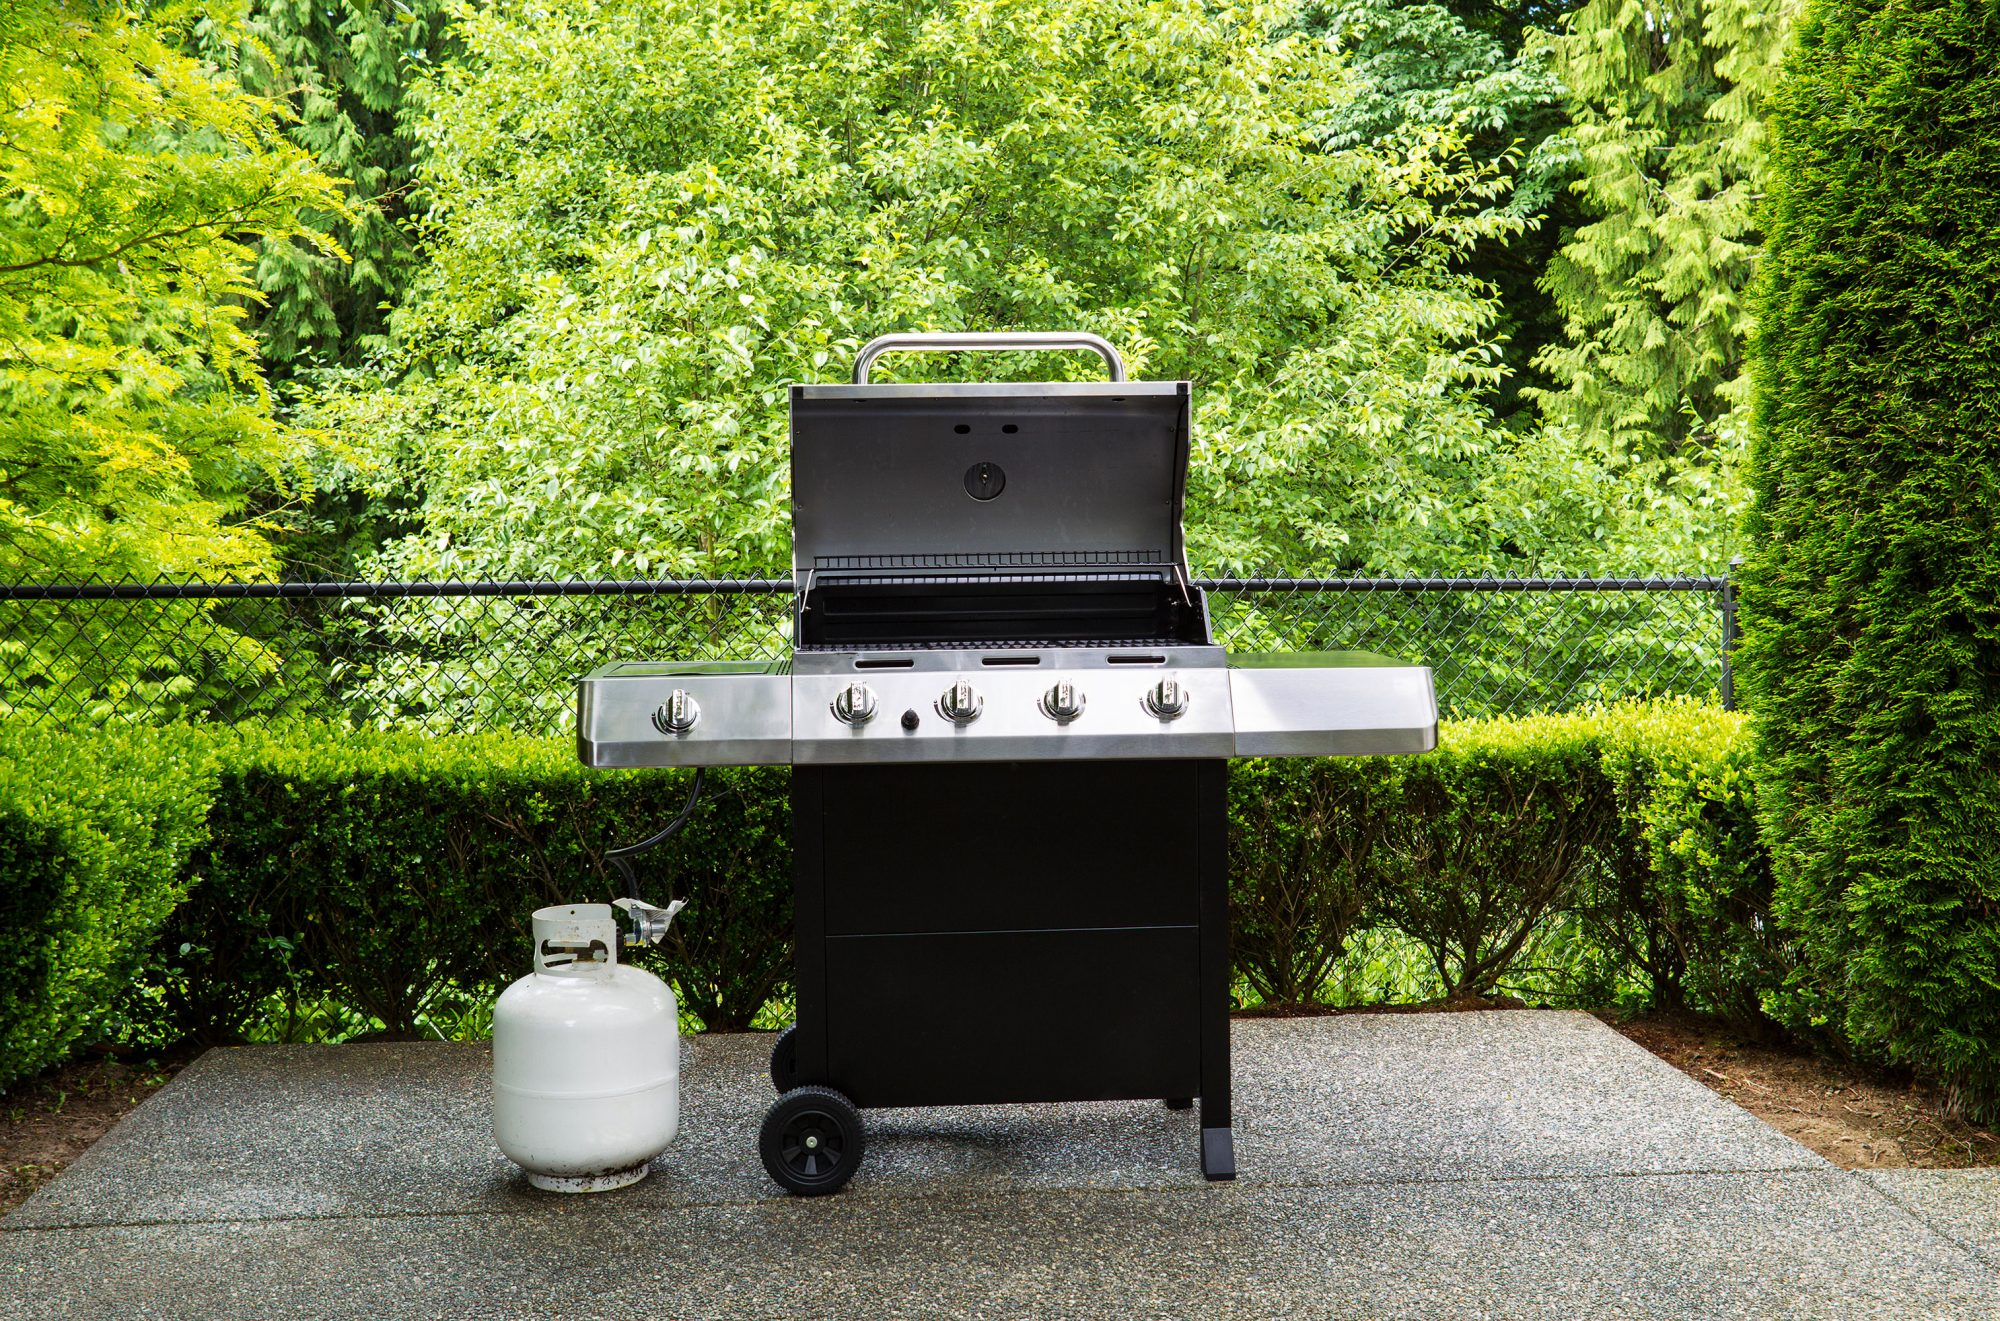 Why Is My Propane Grill Tank Making Hissing Noises?